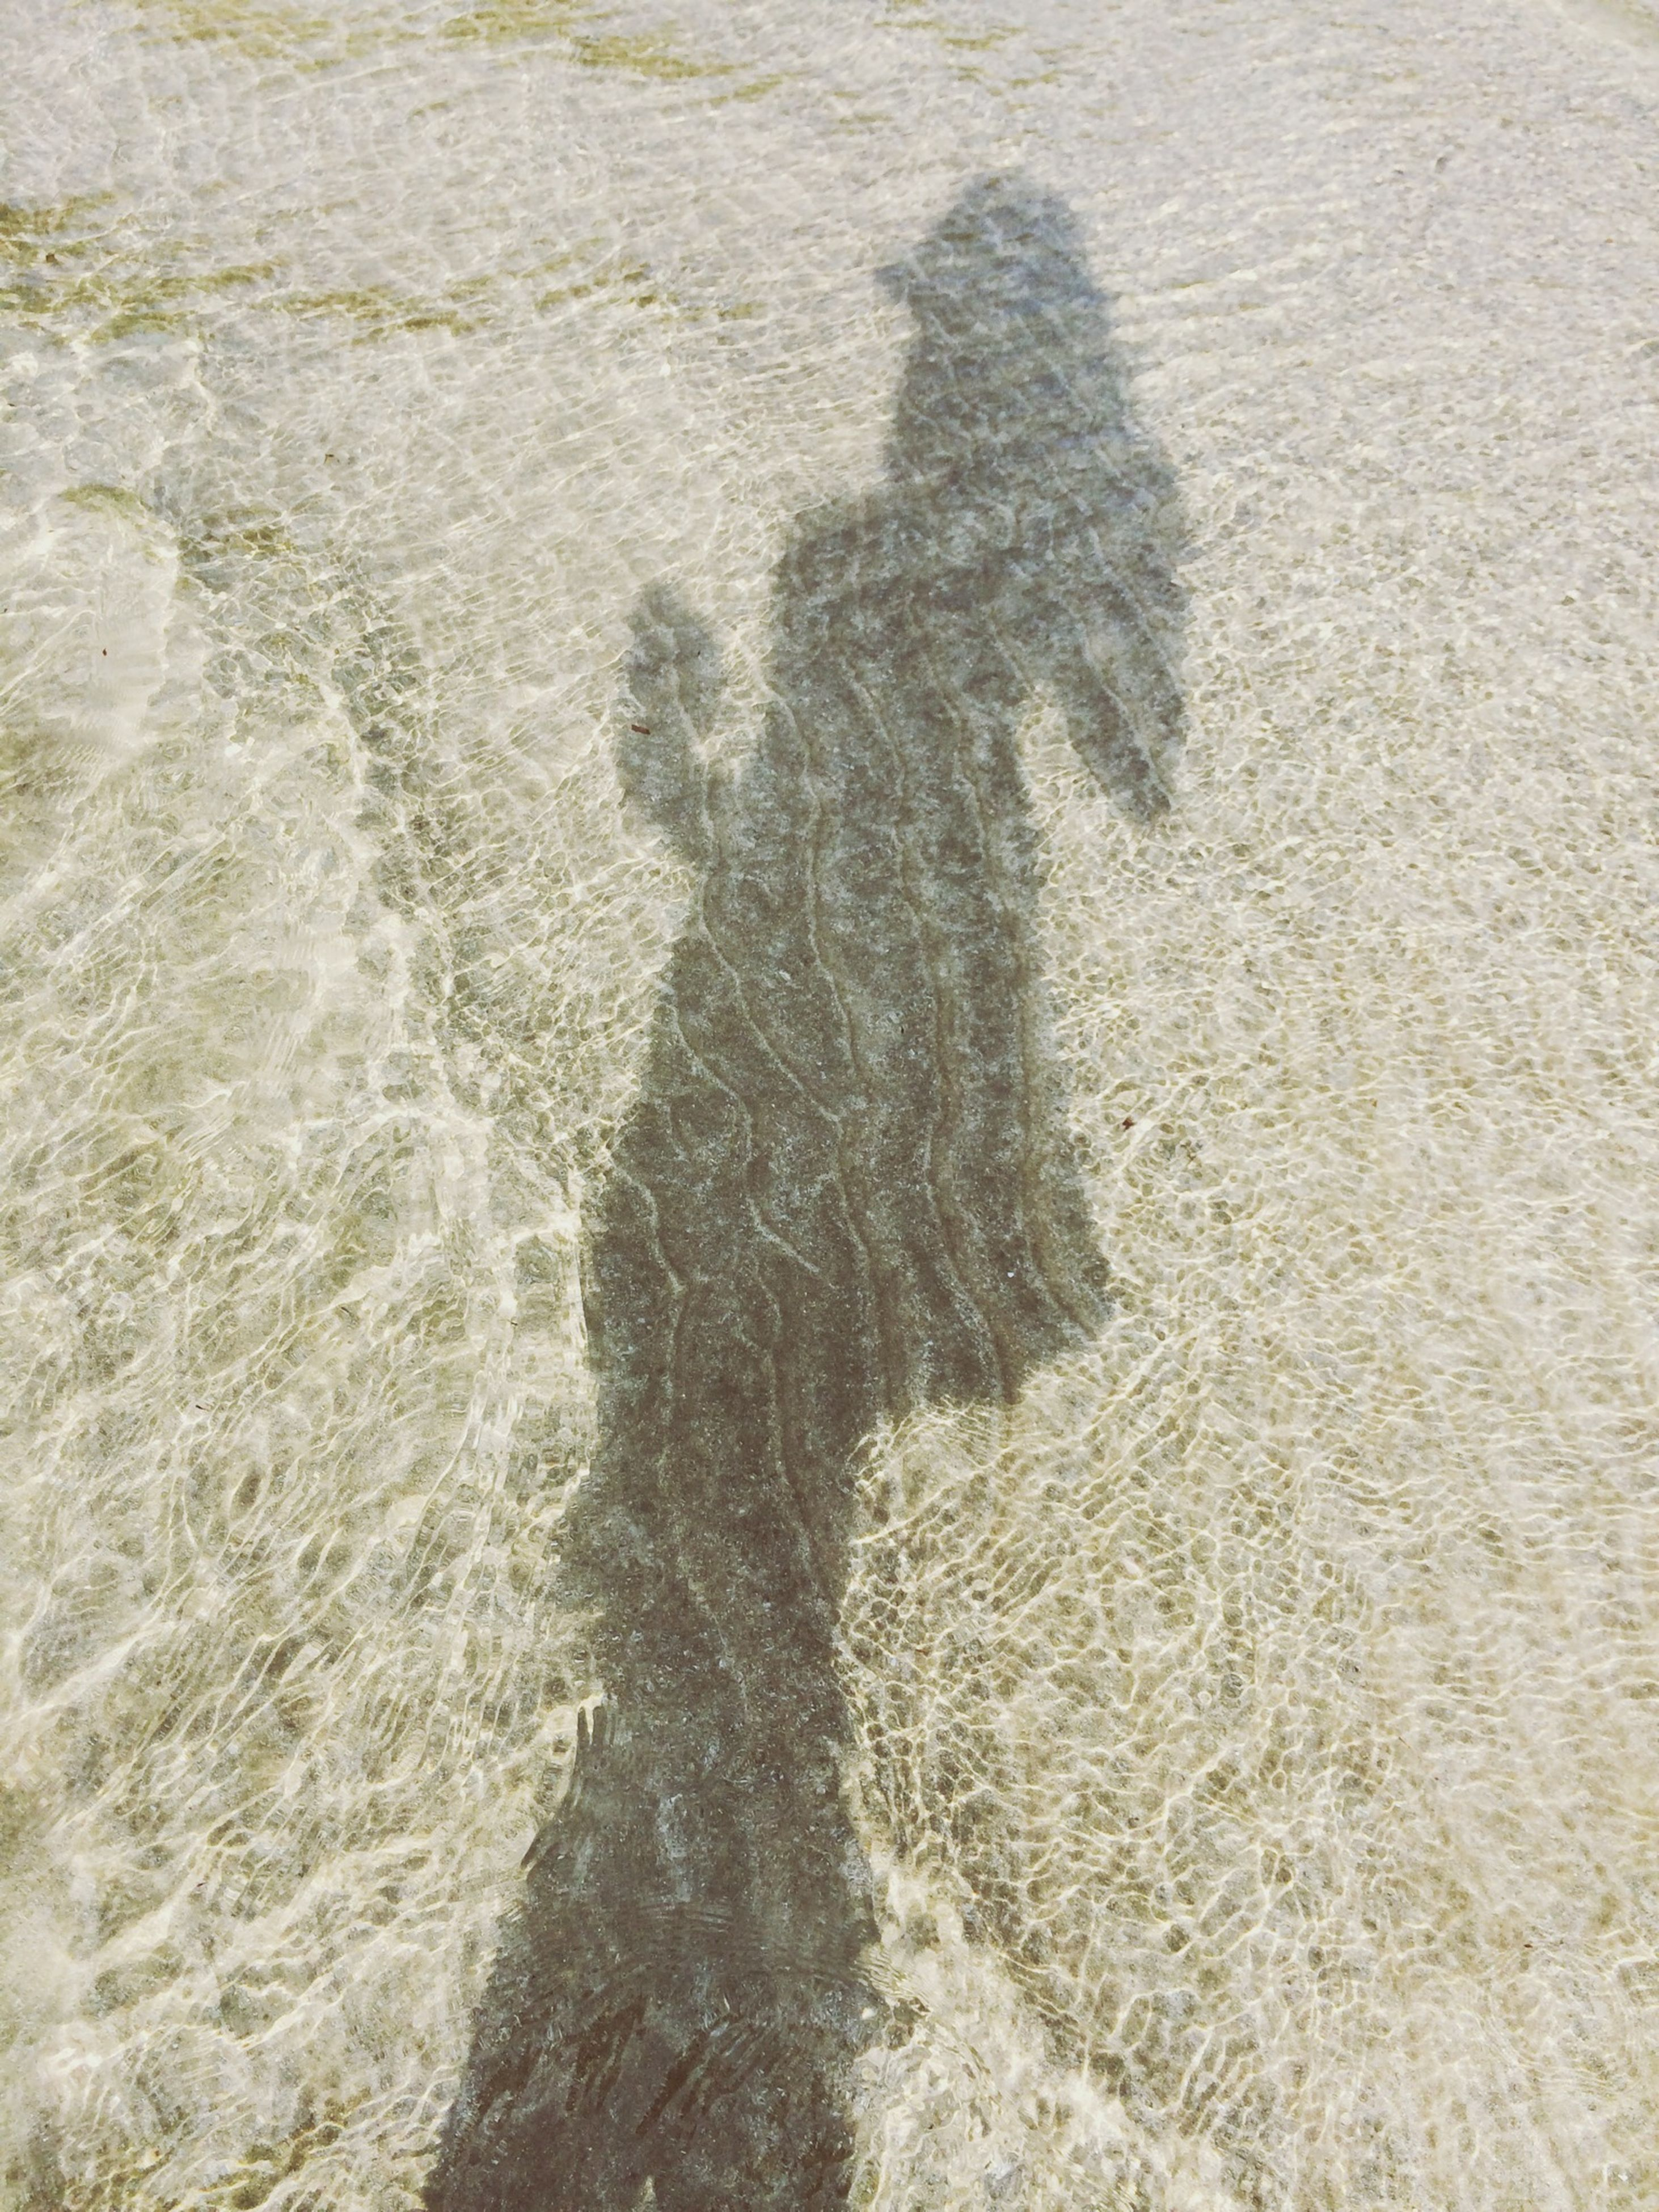 high angle view, shadow, sand, sunlight, focus on shadow, textured, beach, day, outdoors, nature, full frame, field, backgrounds, footprint, pattern, unrecognizable person, tranquility